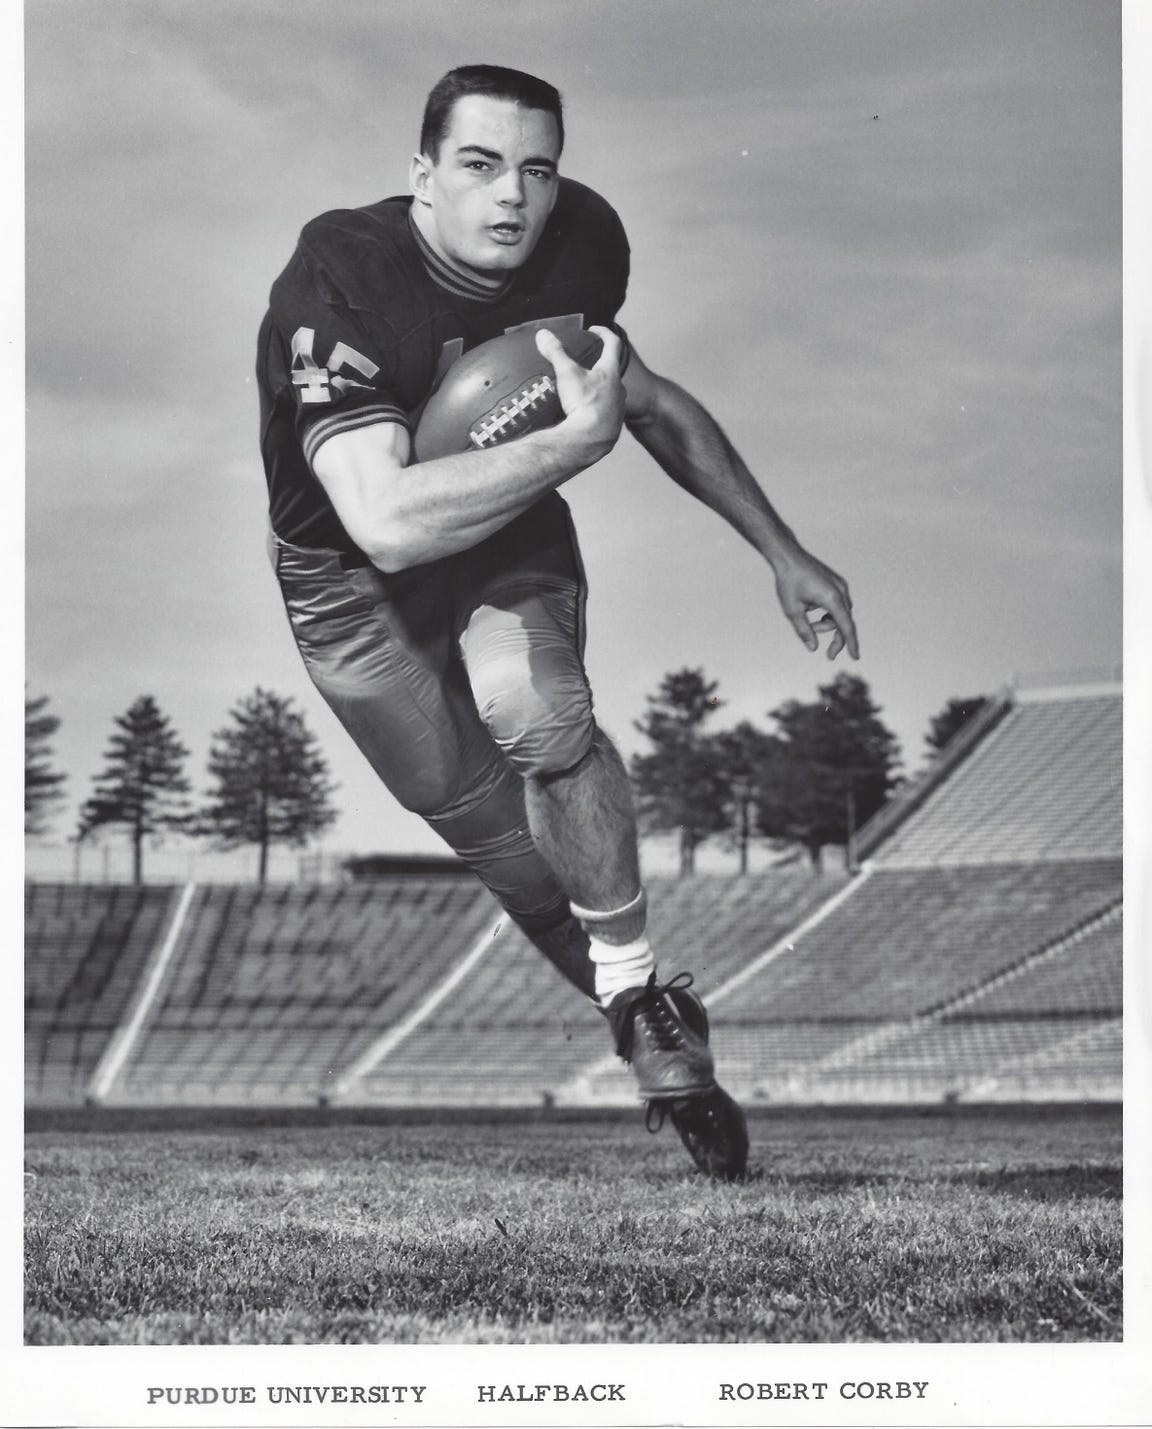 Bob Corby was a standout end for the Purdue football team in the mid 1960s.